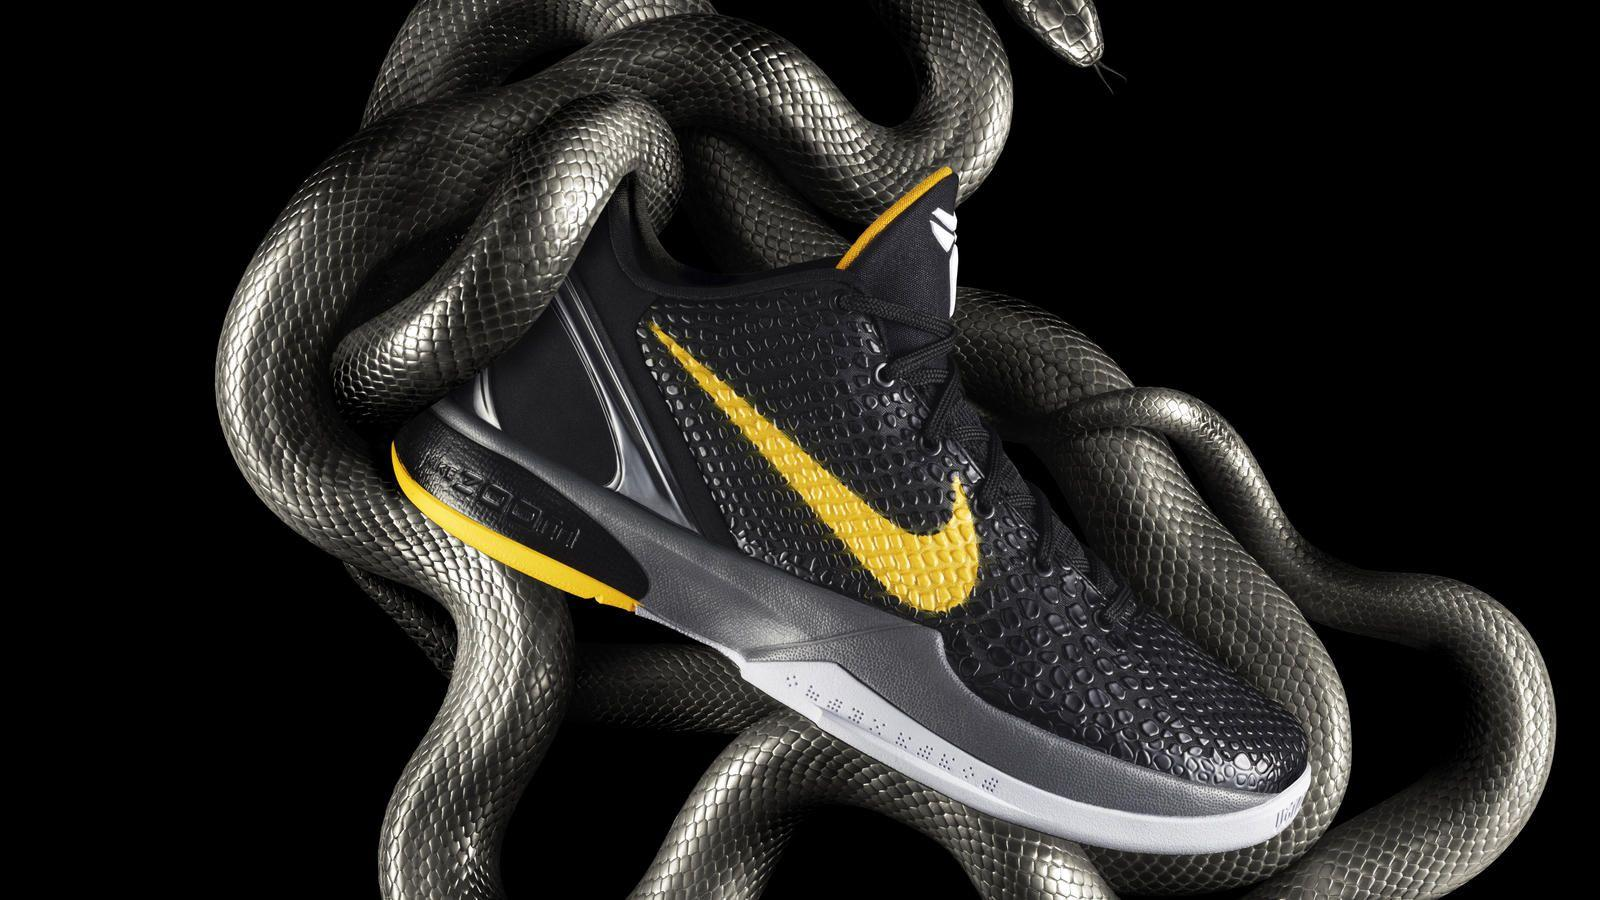 Kobe Shoes Wallpapers - Wallpaper Cave